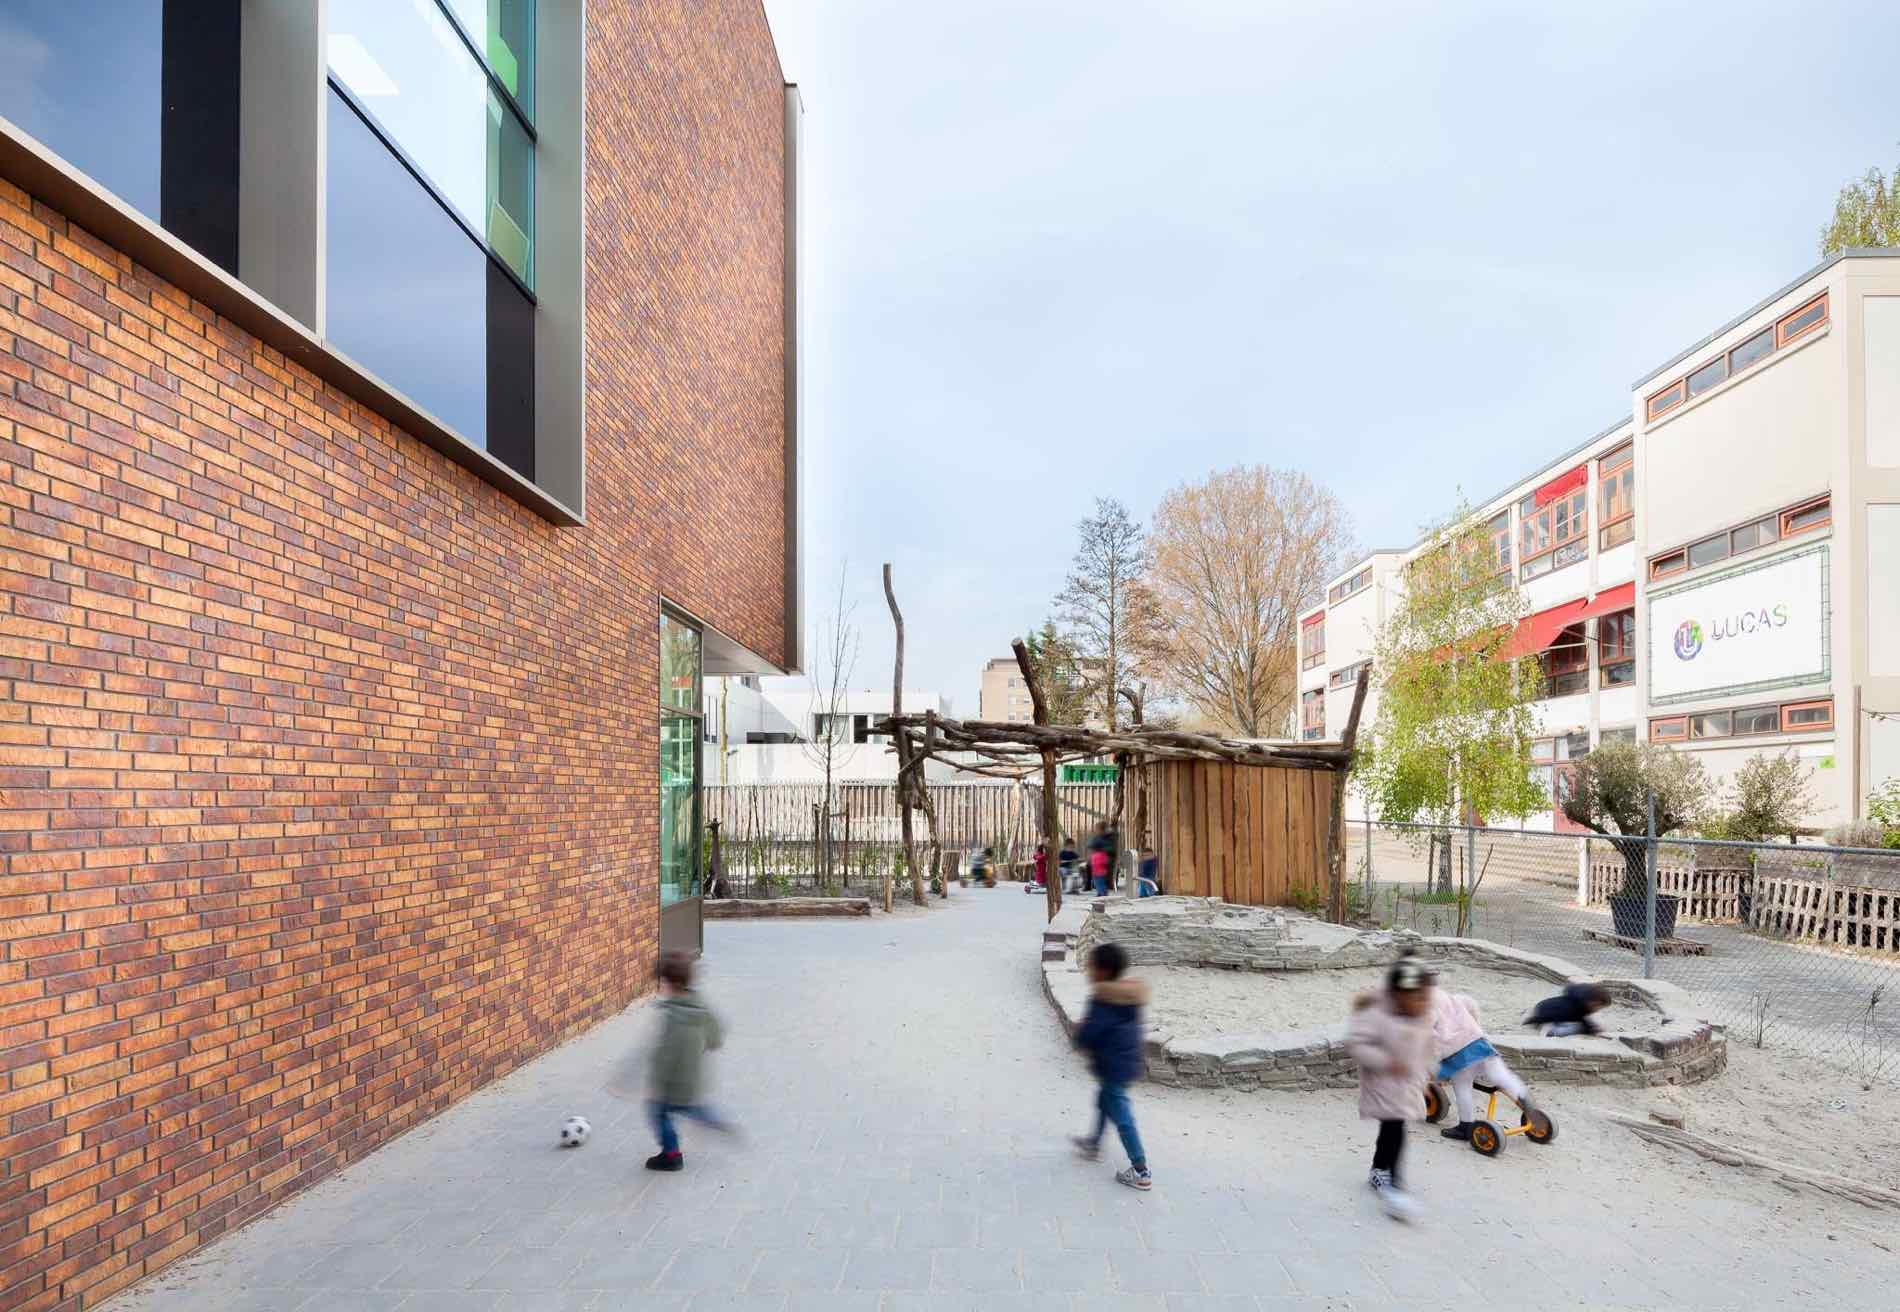 IKC Het Talent 4 Amsterdam - Paul de Ruiter architects